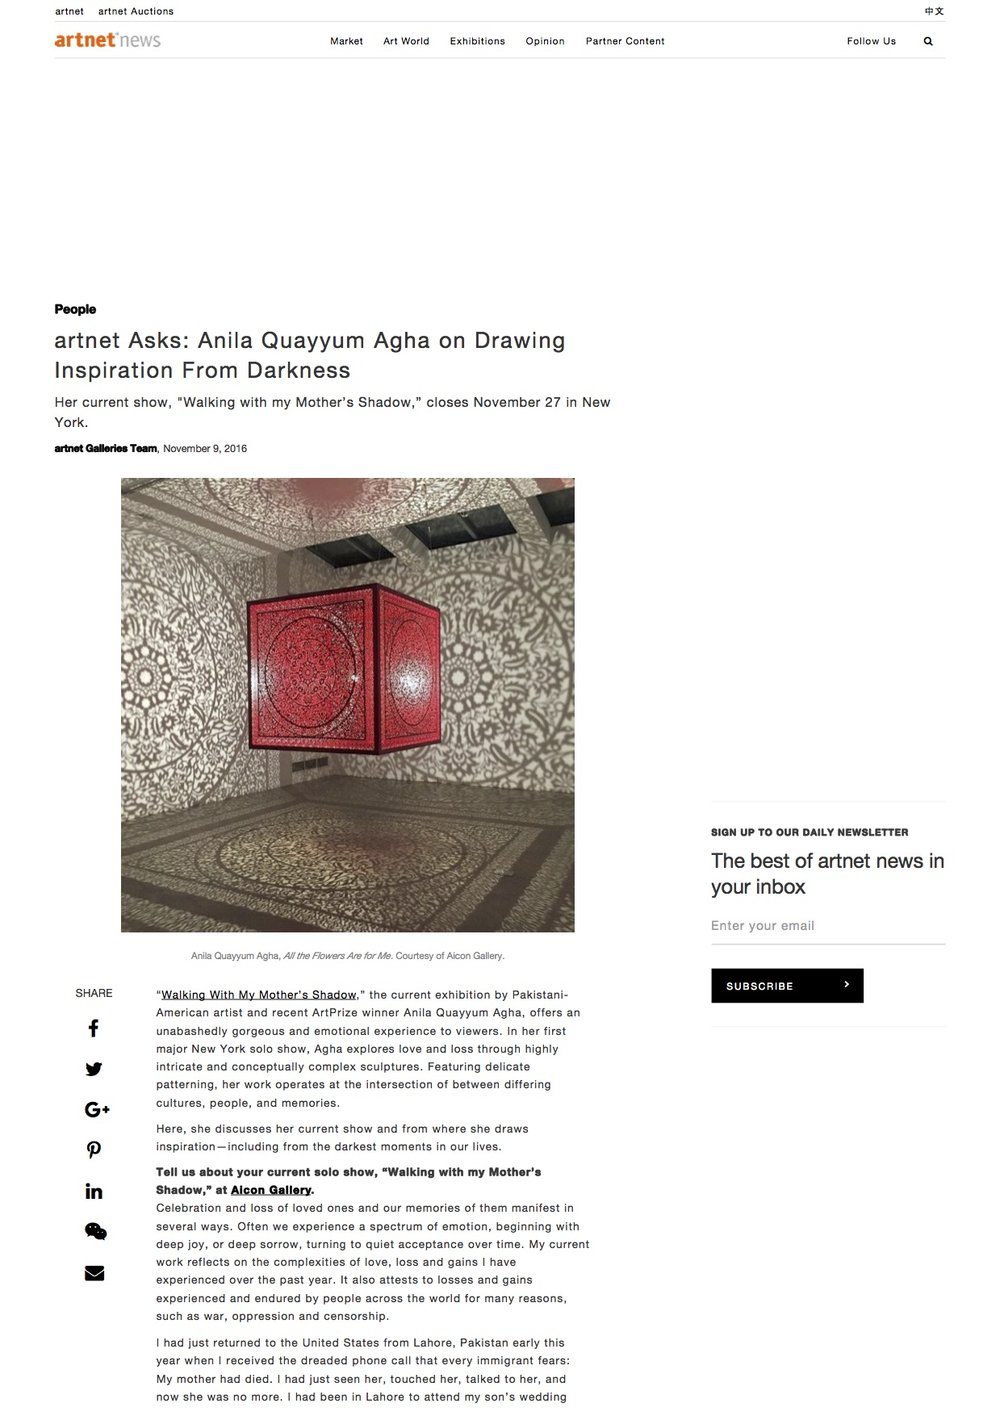 artnet news_ anila quayyum agha interview.jpg